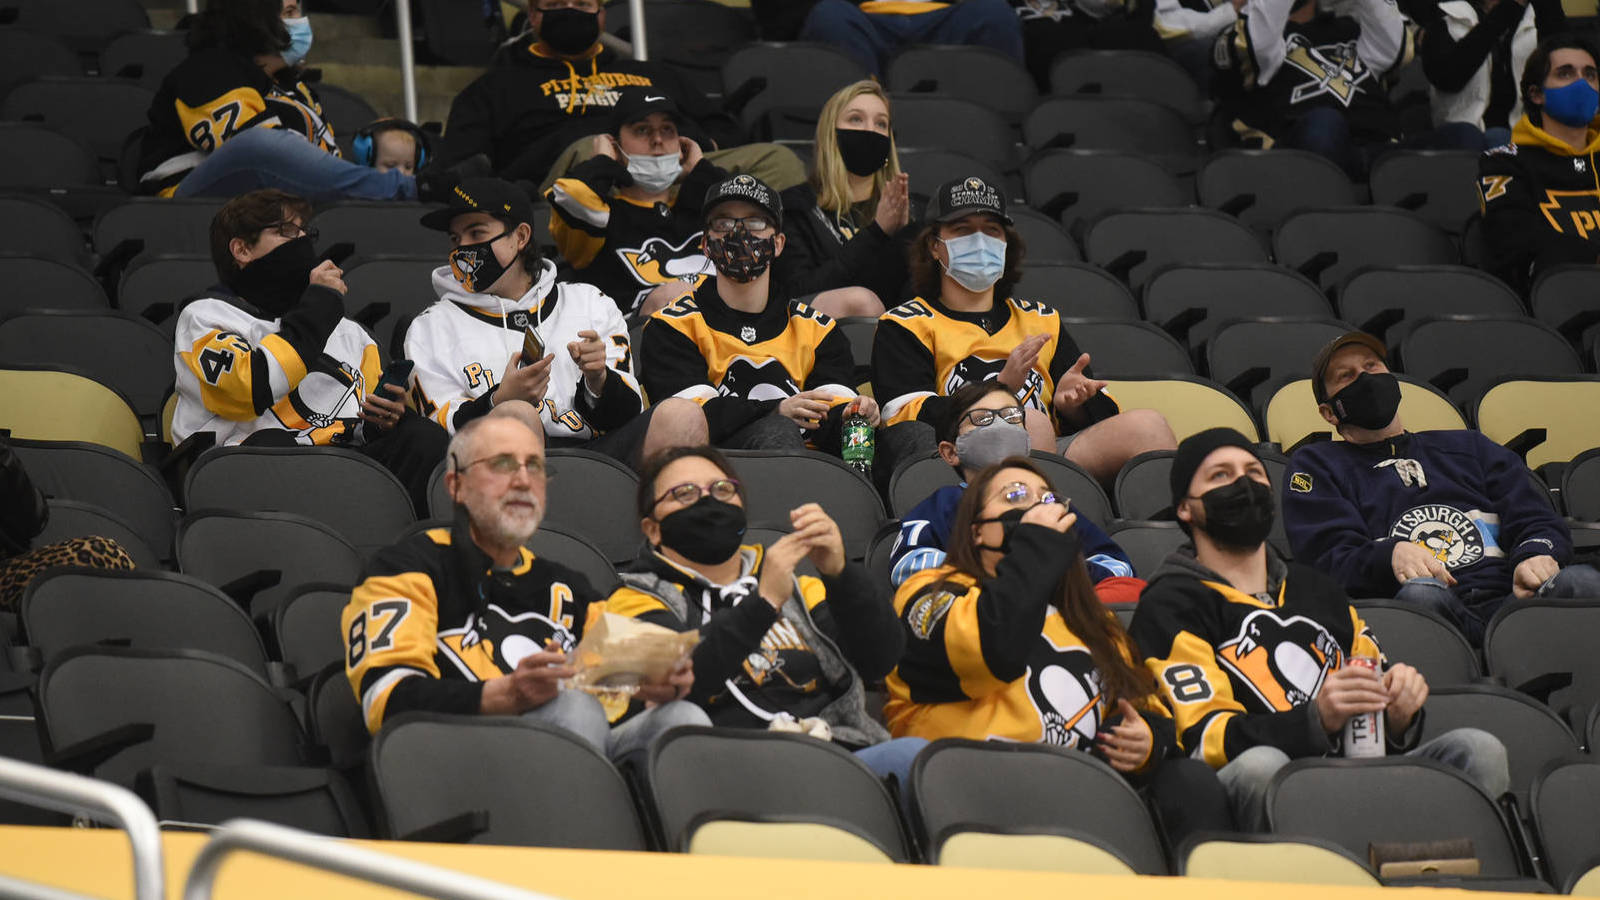 Penguins admit to adding masks onto fans in doctored pic